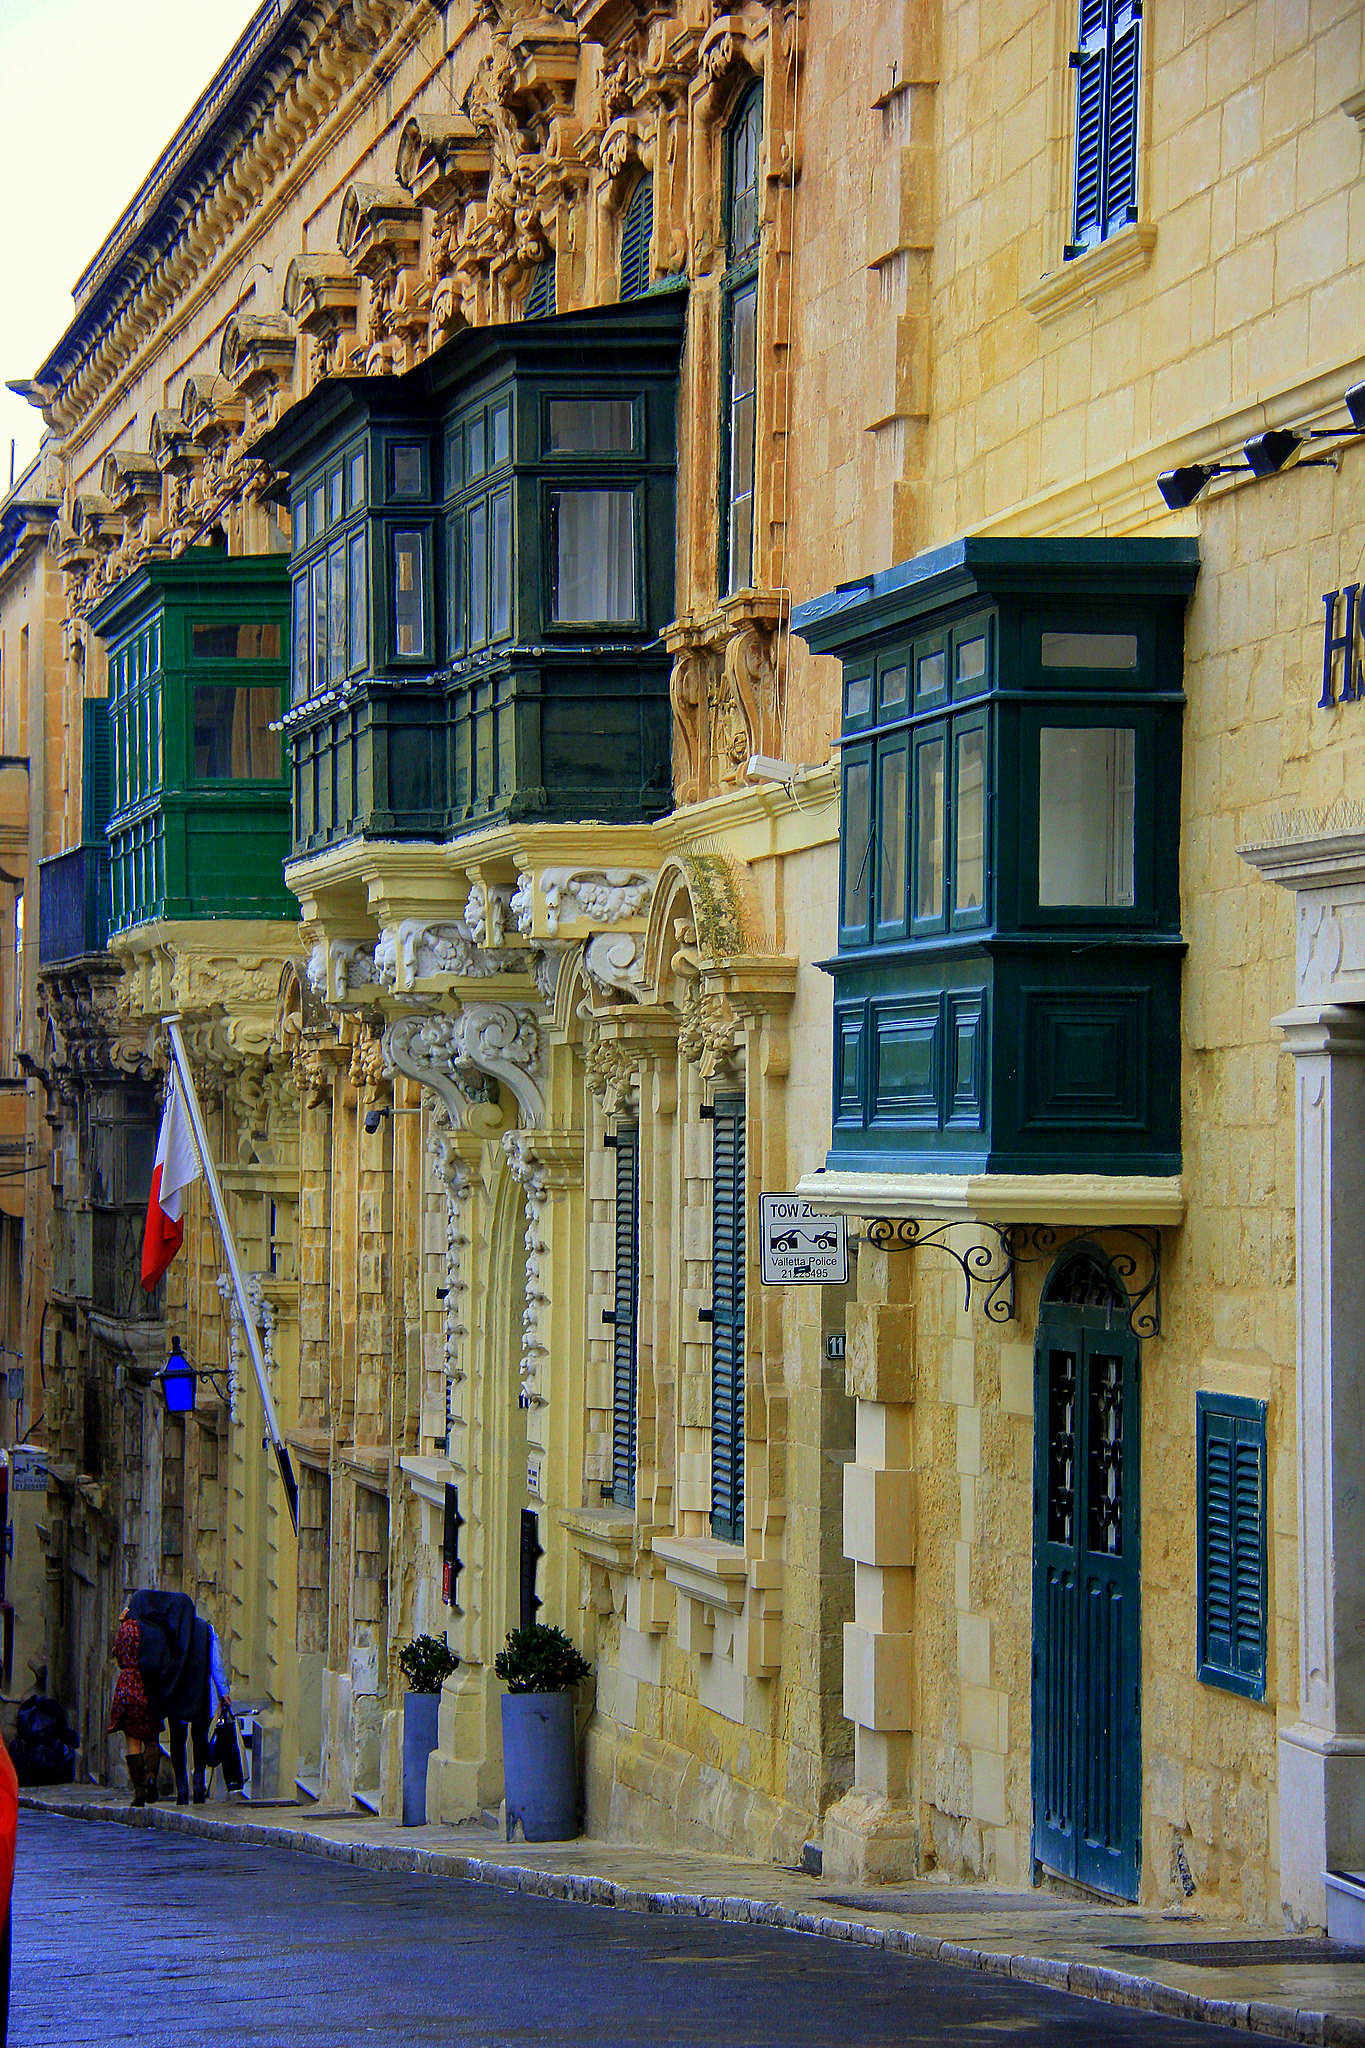 Valetta is a beautiful city